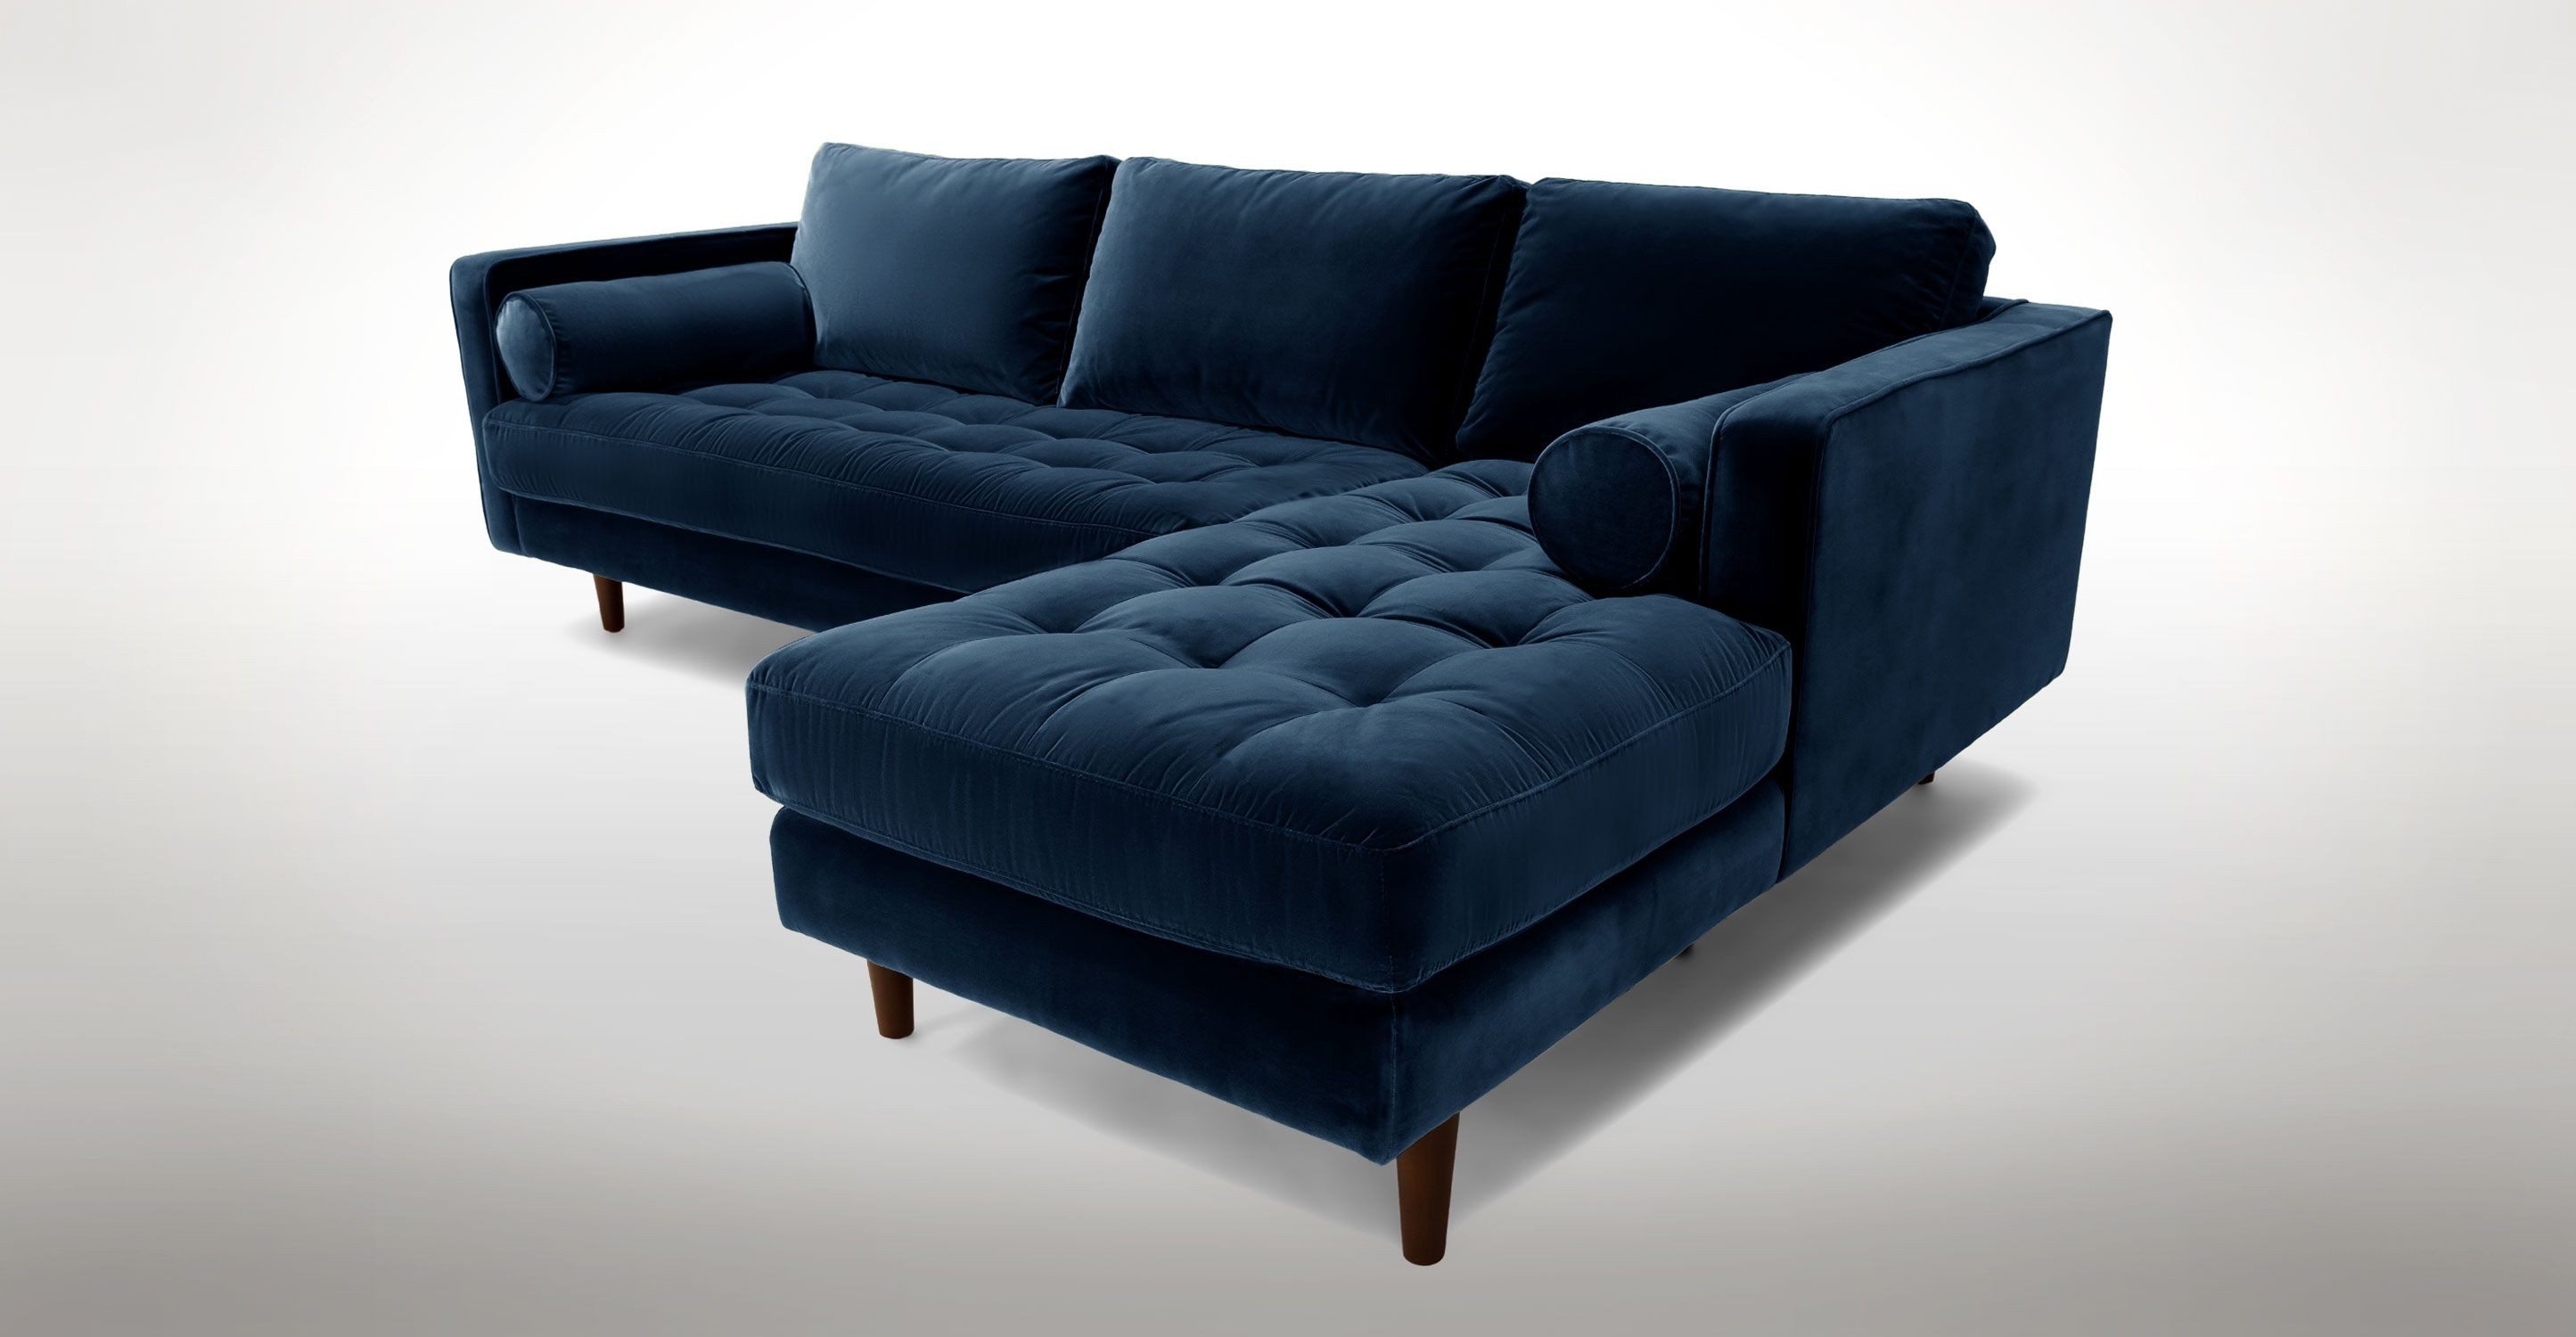 of size sofas full leather inspirations dazzling sofa darcy antonio sectional velvet blue denim sleeper pillows sale cushionsblue san pictures sectionals for singapore